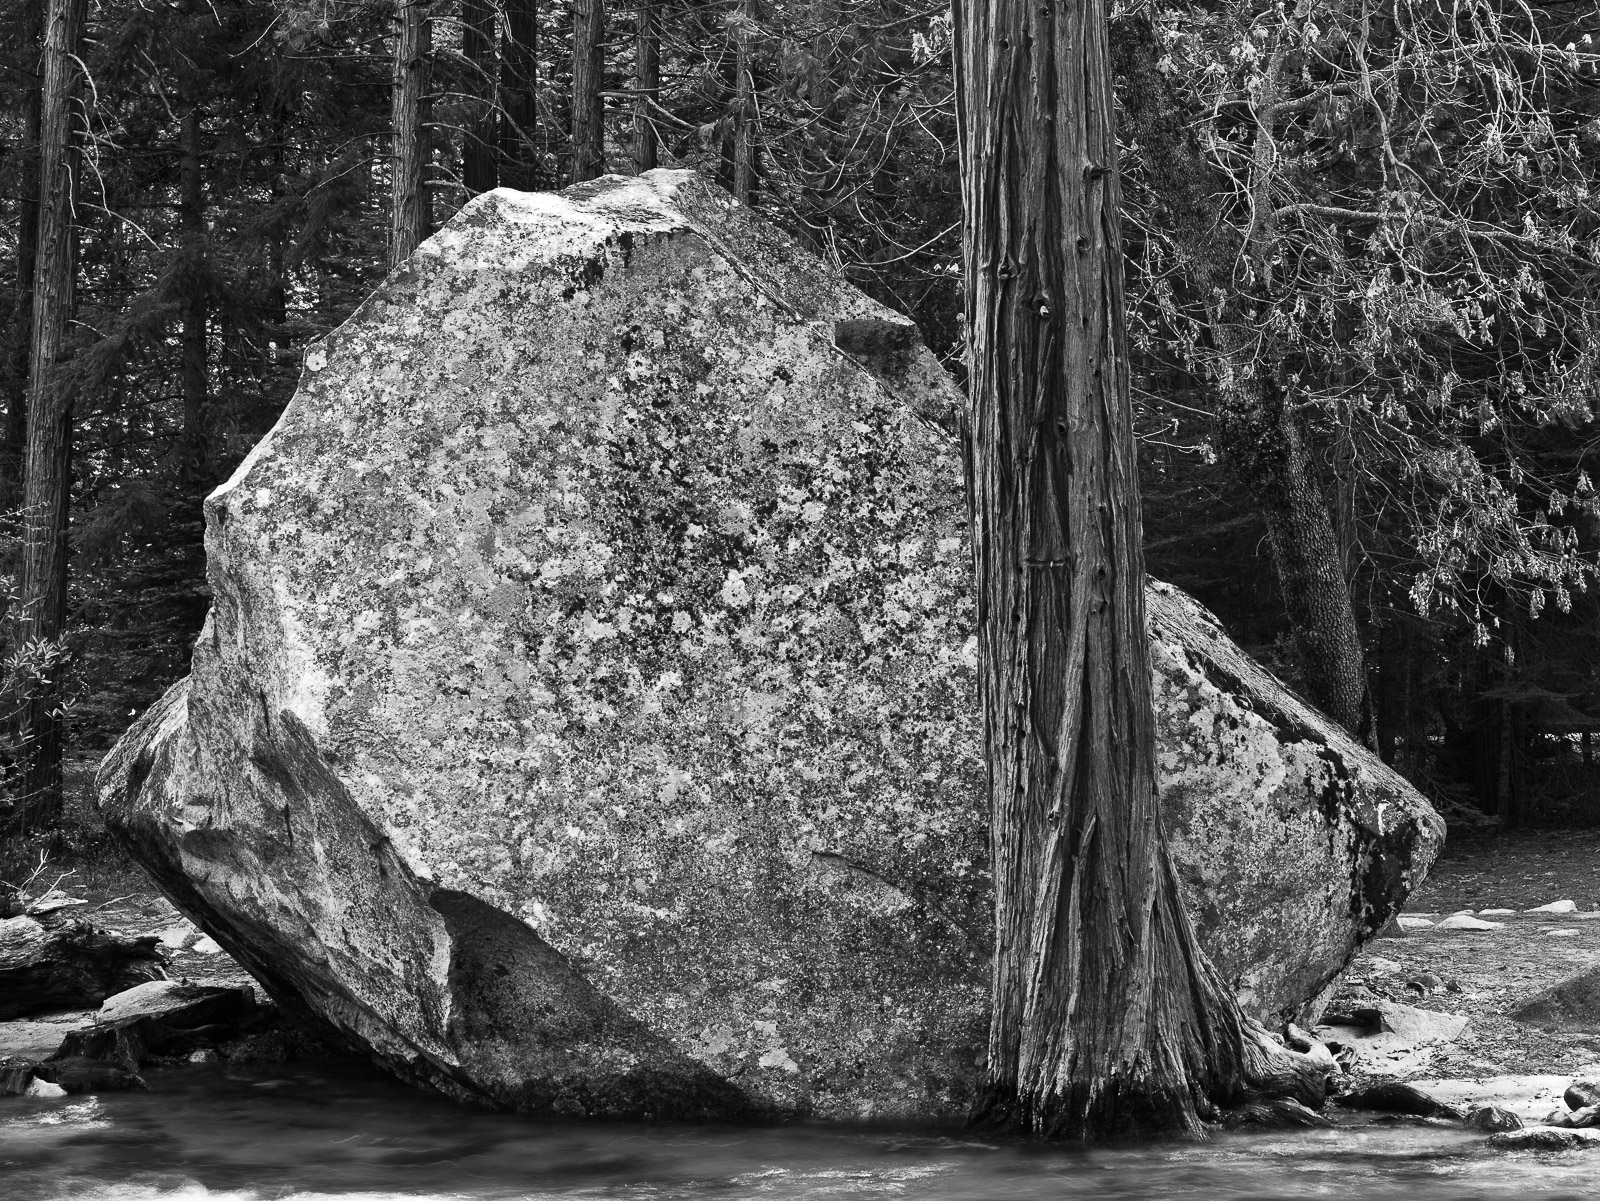 From Strength to Strength, Black and White, California, Yosemite National Park, horizontal, BW, B&W, Black, White, photo